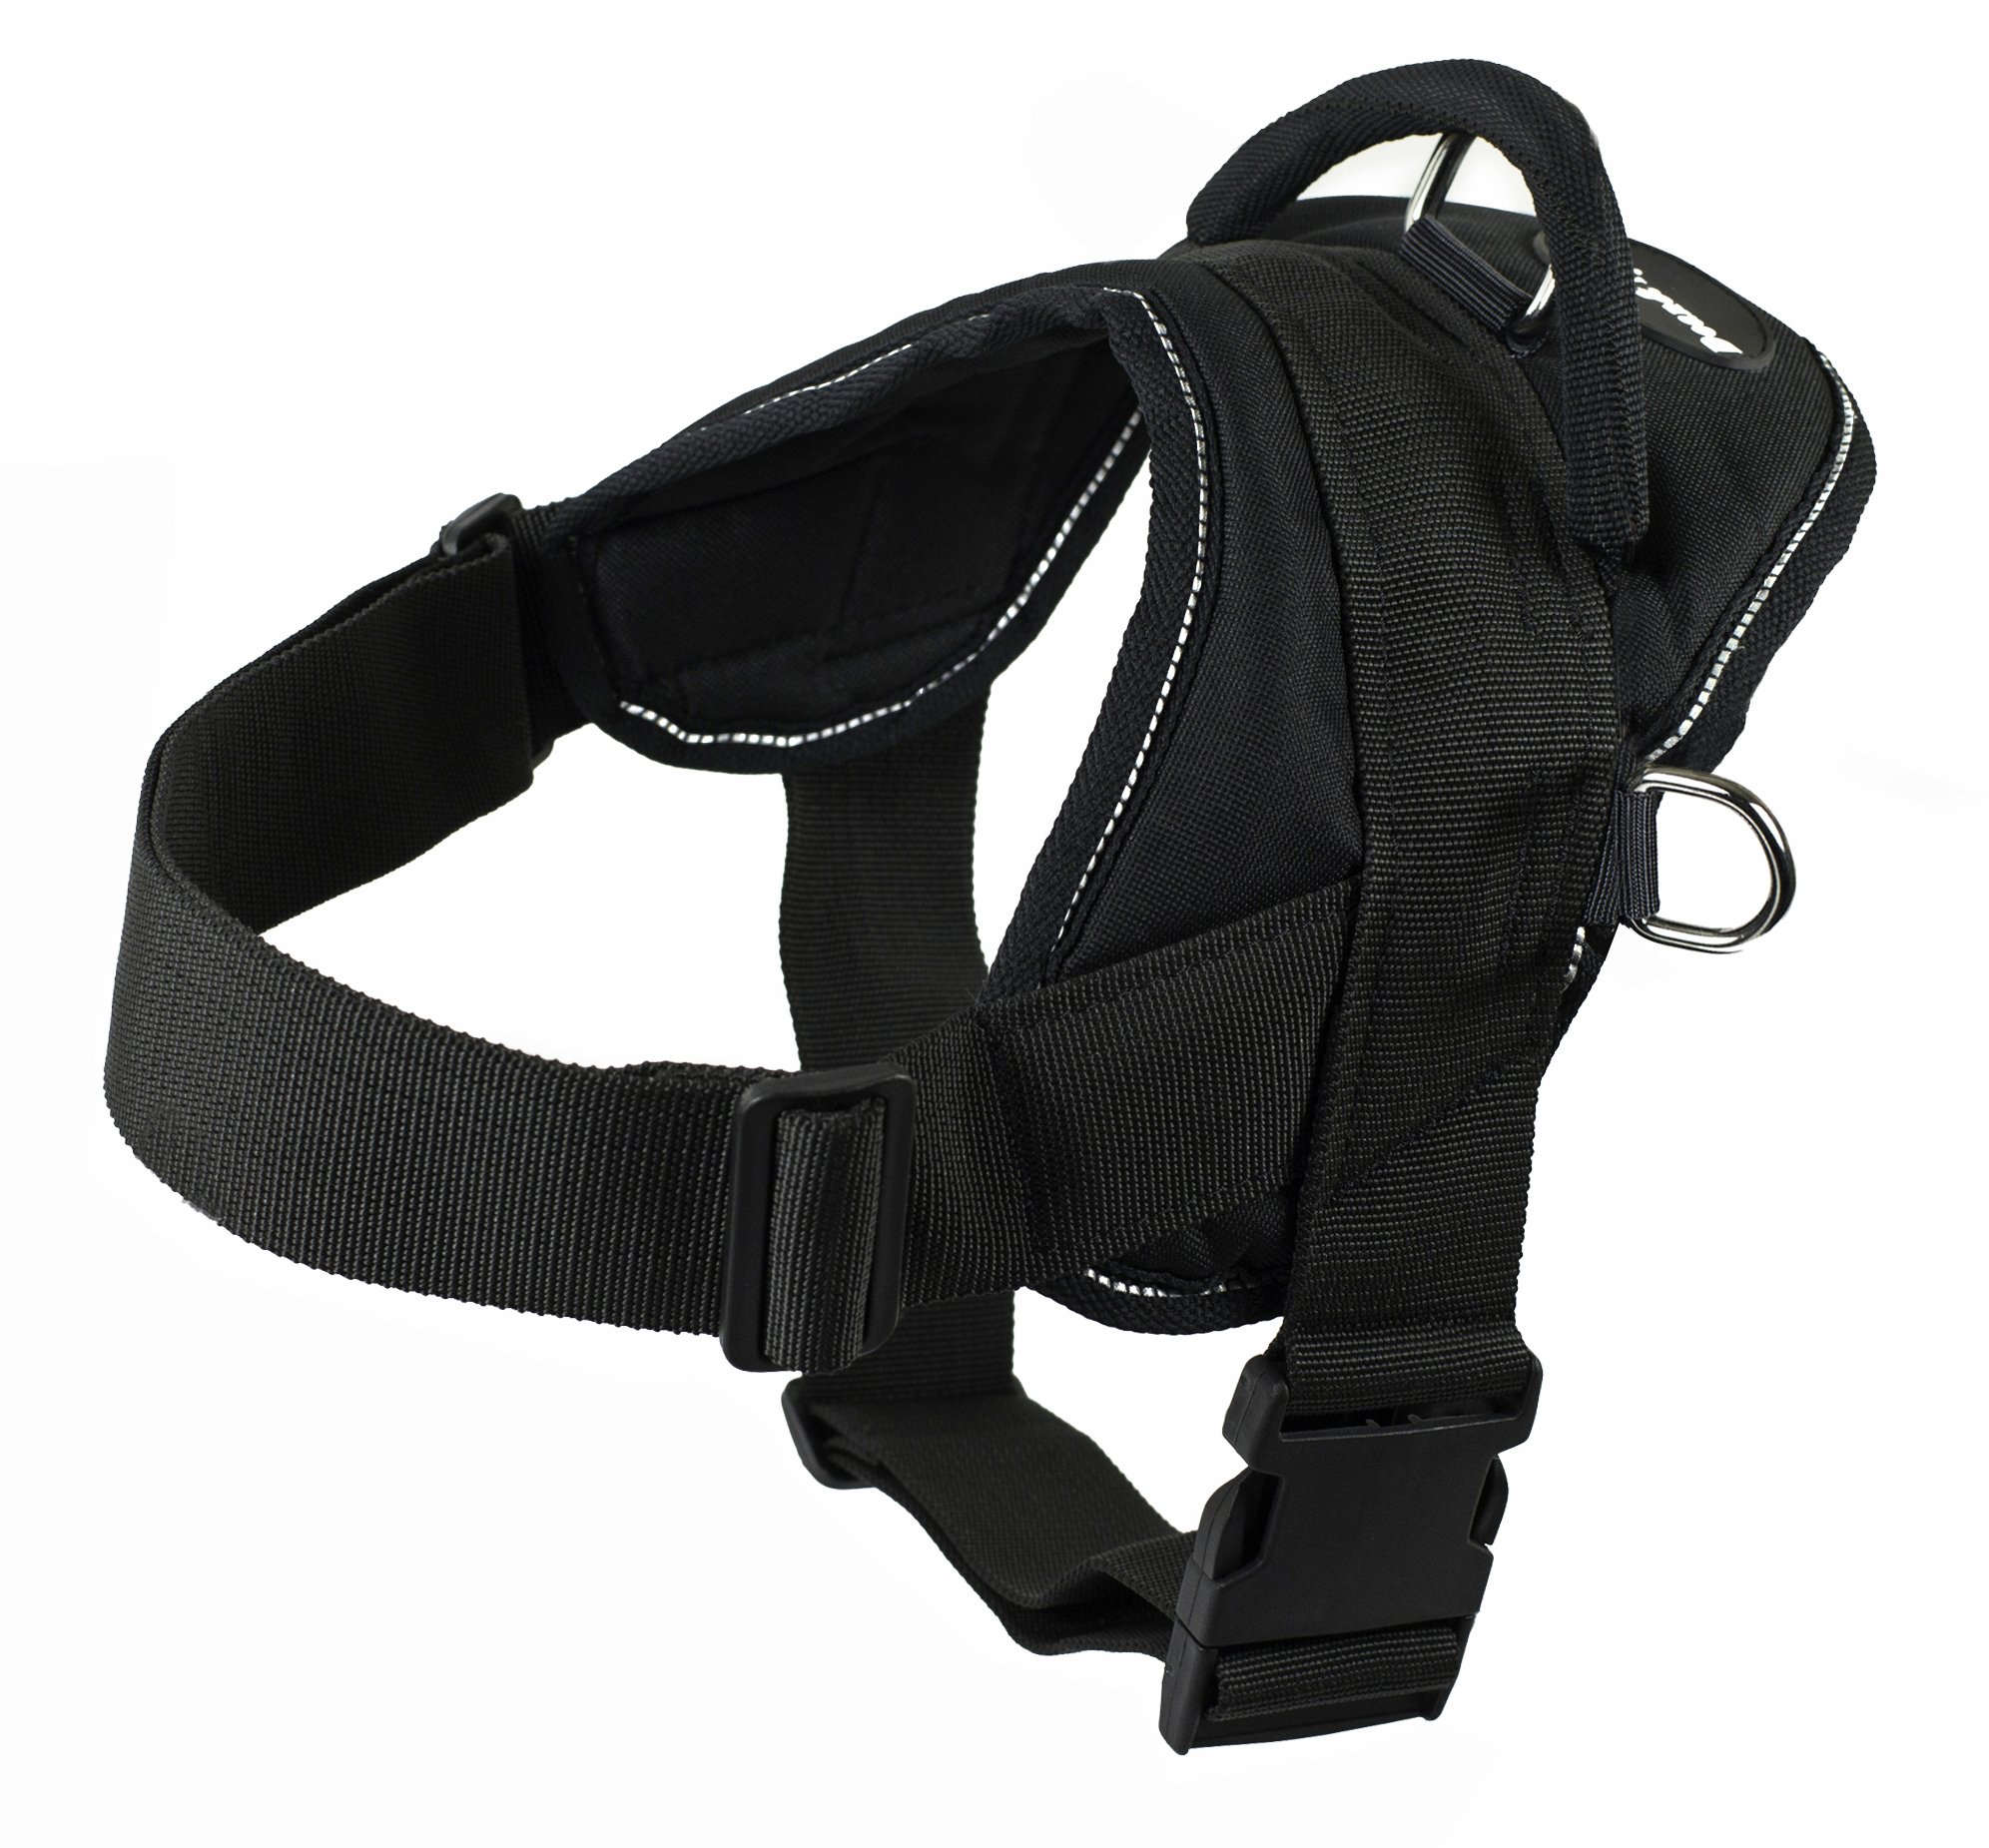 Dean and Tyler DT Dog Harness, Black With Reflective Trim, Large - Fits Girth Size: 32-Inch to 42-Inch